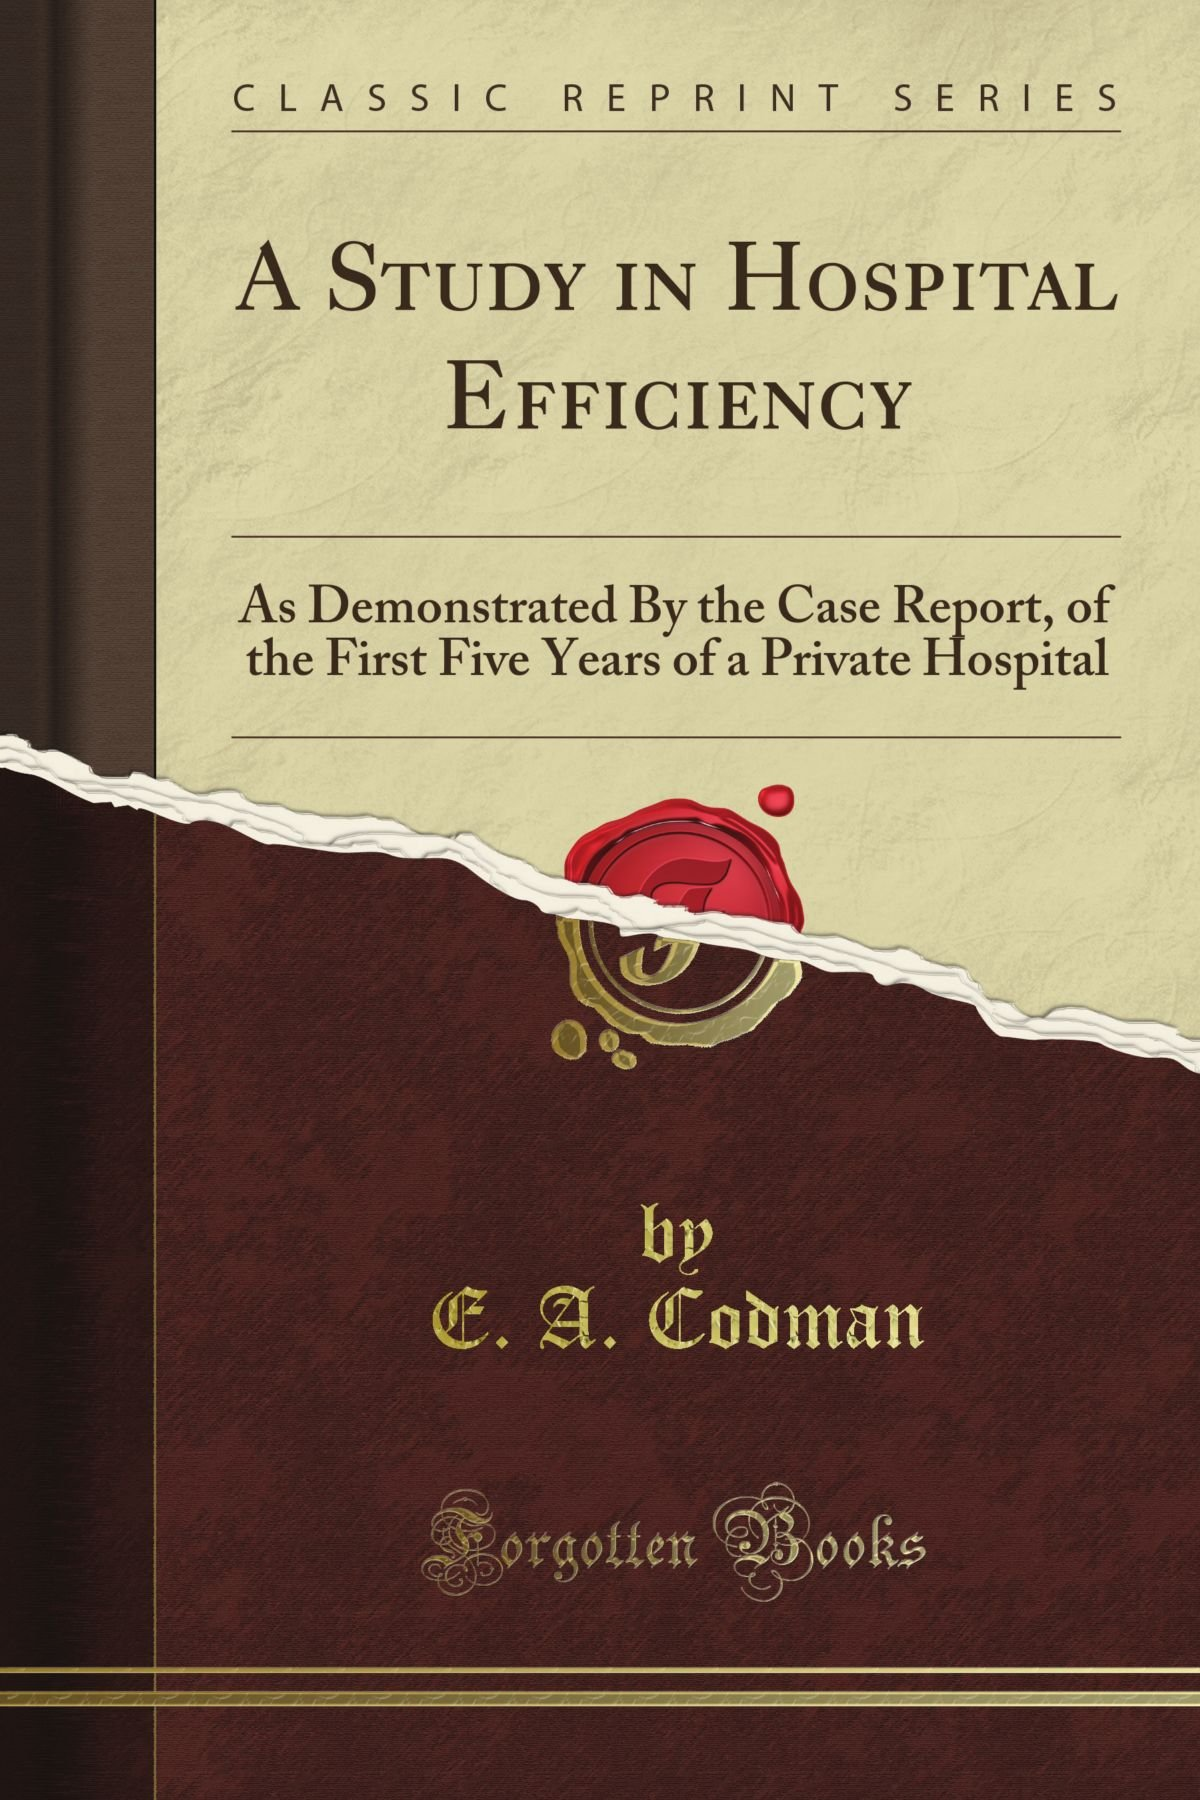 A Study in Hospital Efficiency: As Demonstrated By the Case Report, of the First Five Years of a Private Hospital (Classic Reprint) PDF